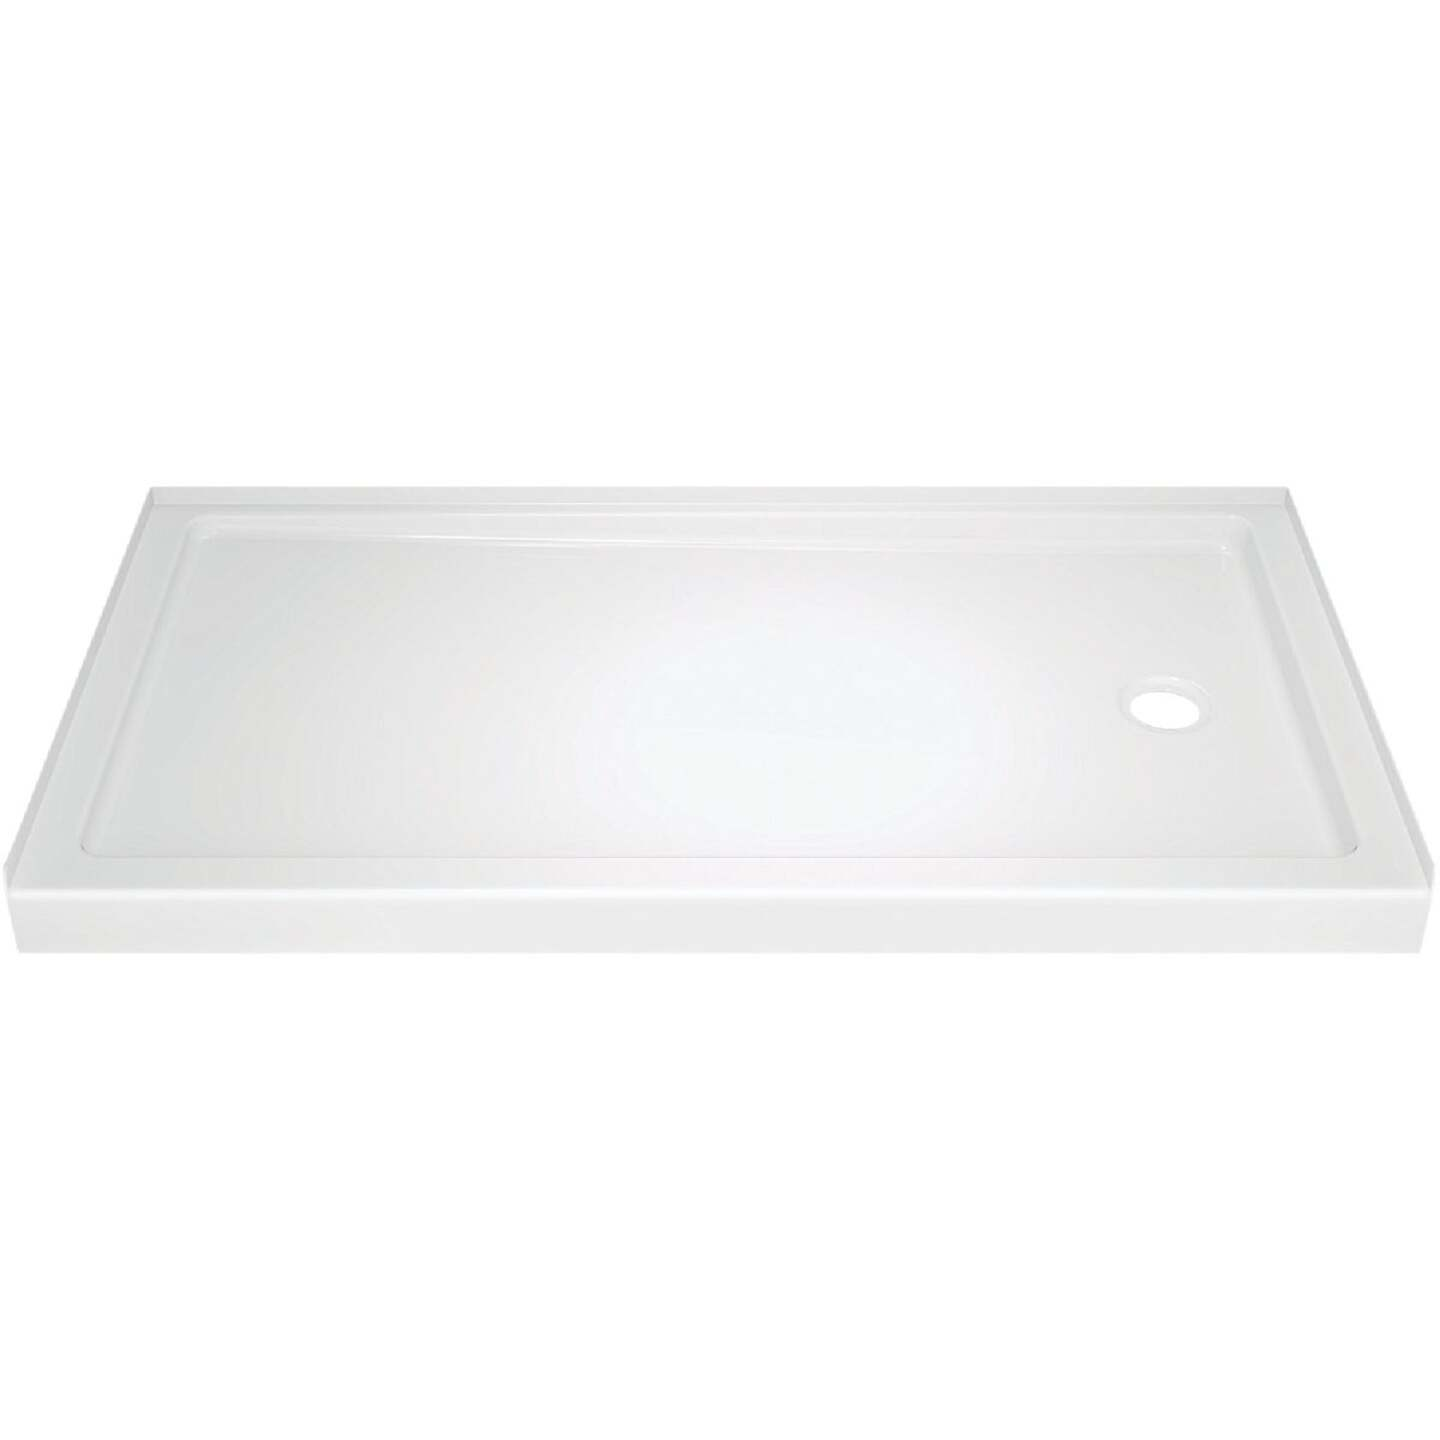 Delta Classic 400 60 In. L x 32 In. D Right Drain Shower Floor & Base in White Image 1